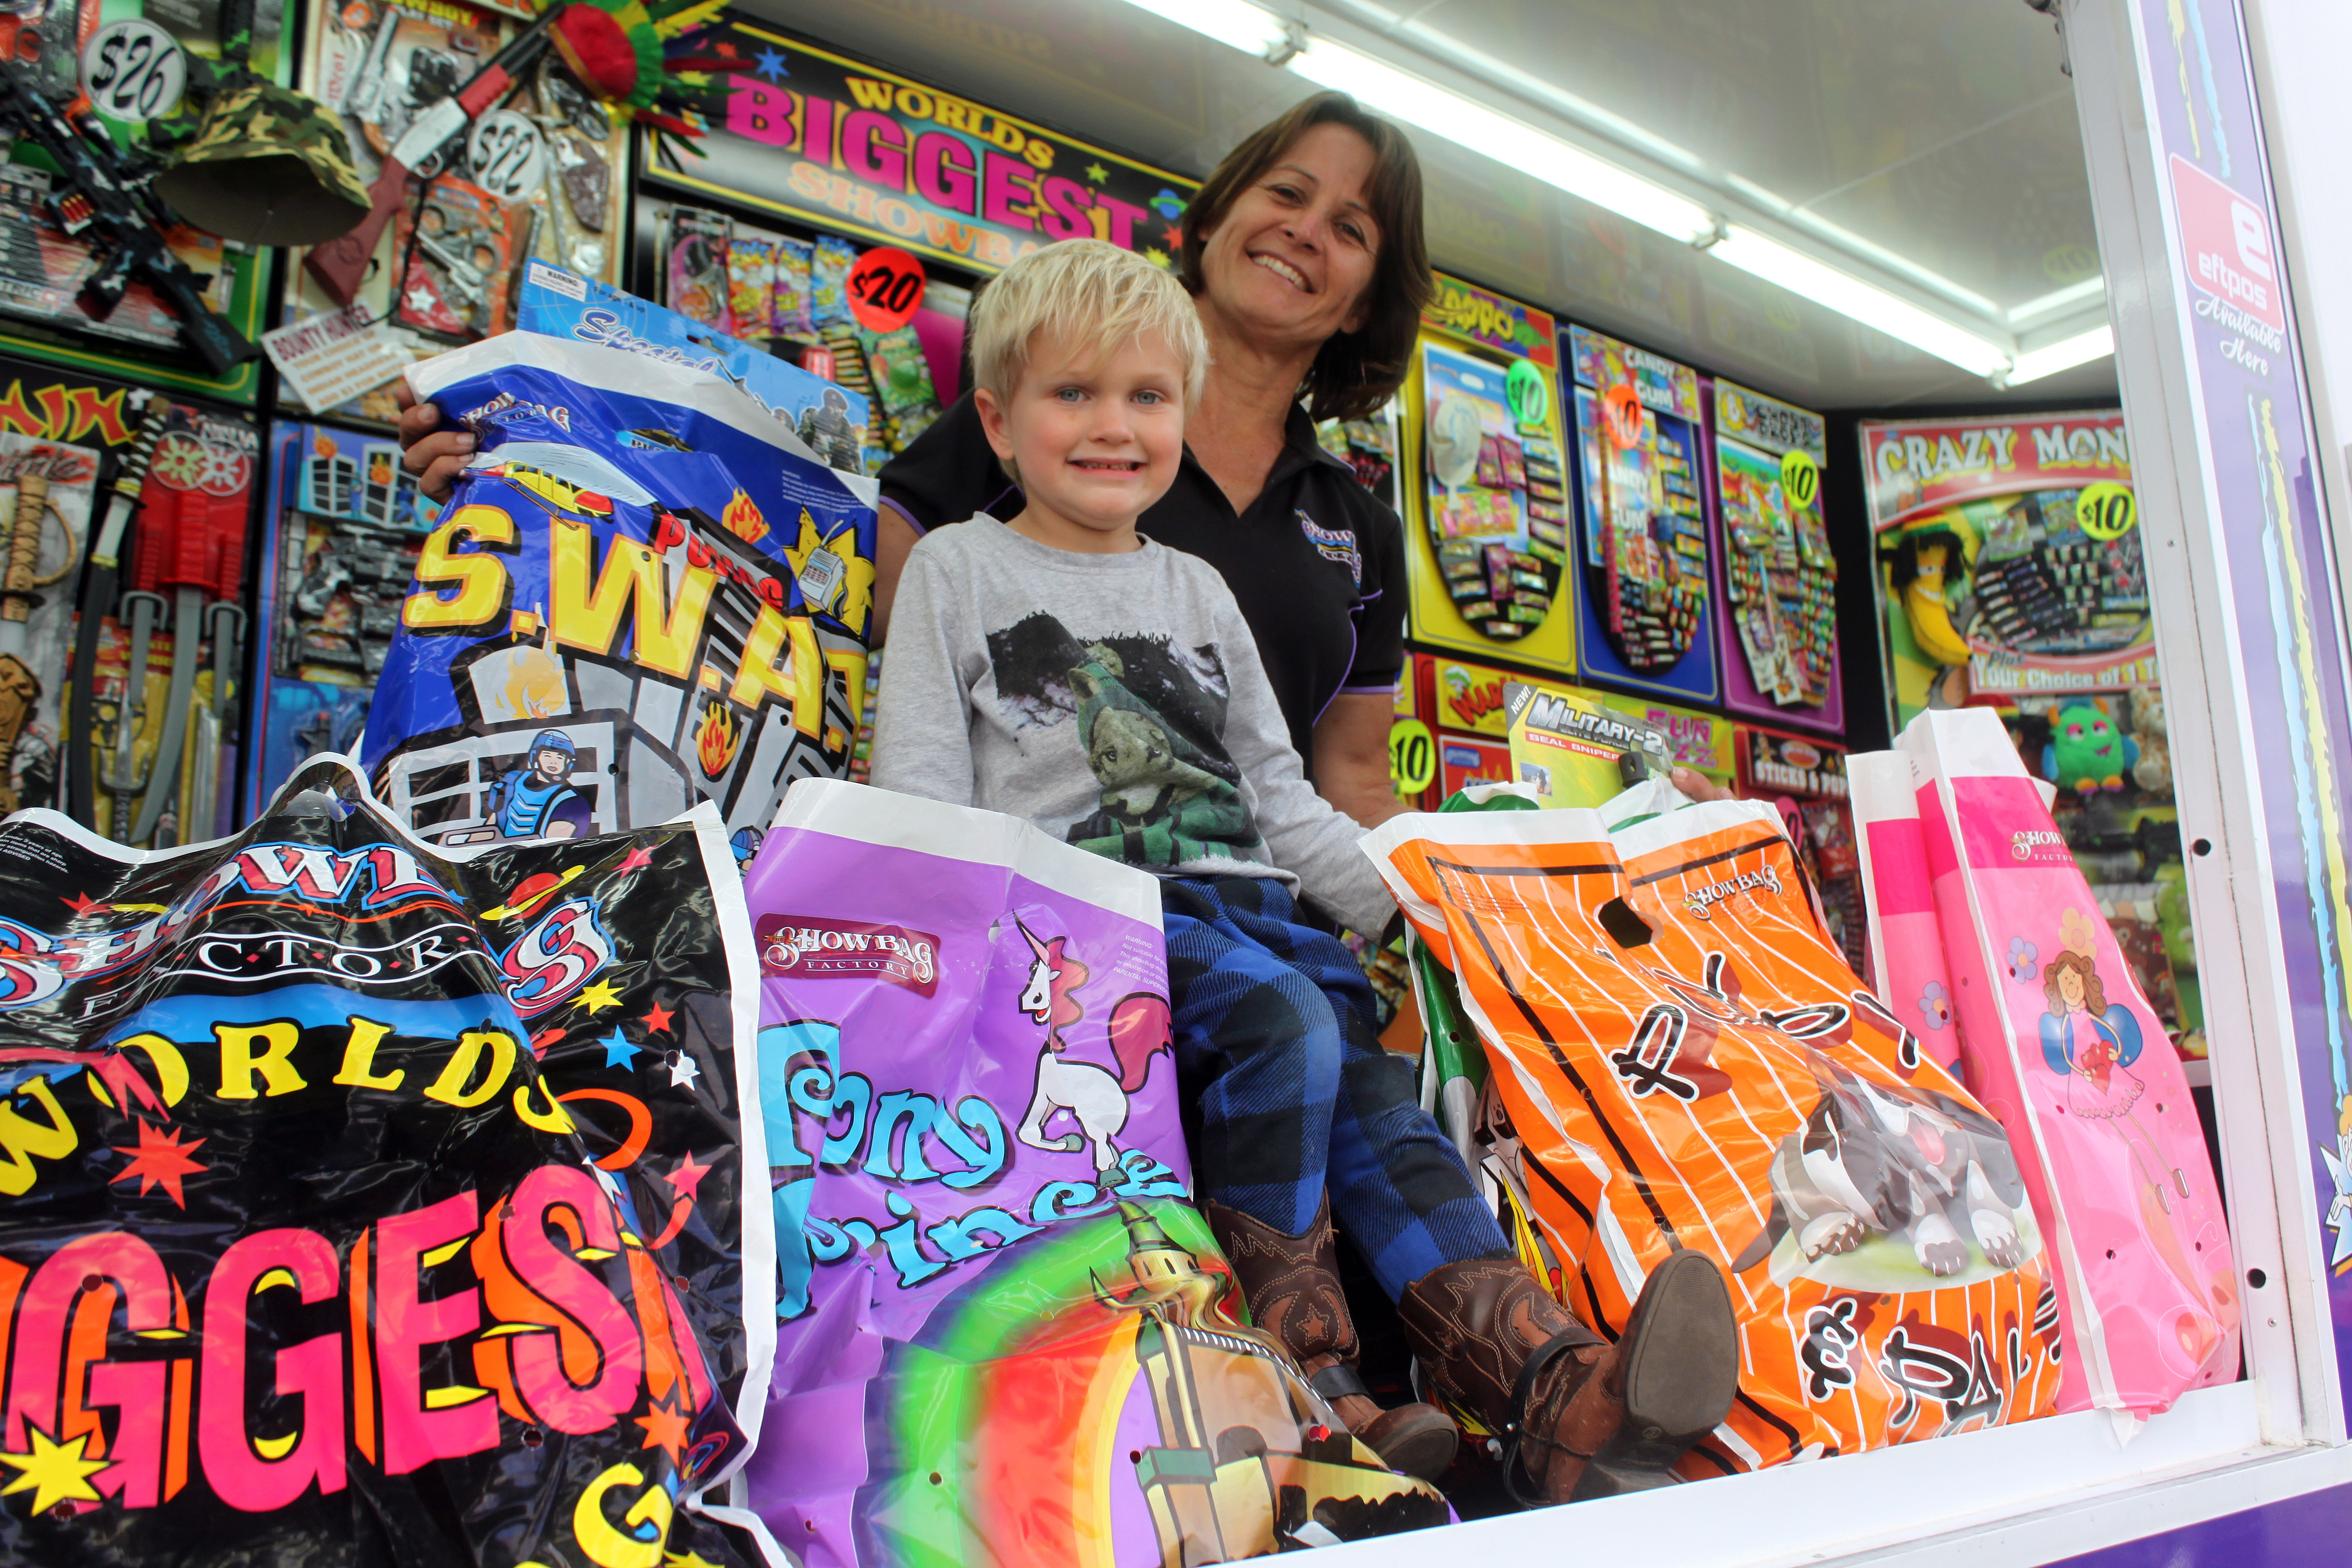 Brock Richards, 3, couldn't be happier among the countless showbags available at the Showbag Factory. Pictured with his aunt, Shelley Pink.